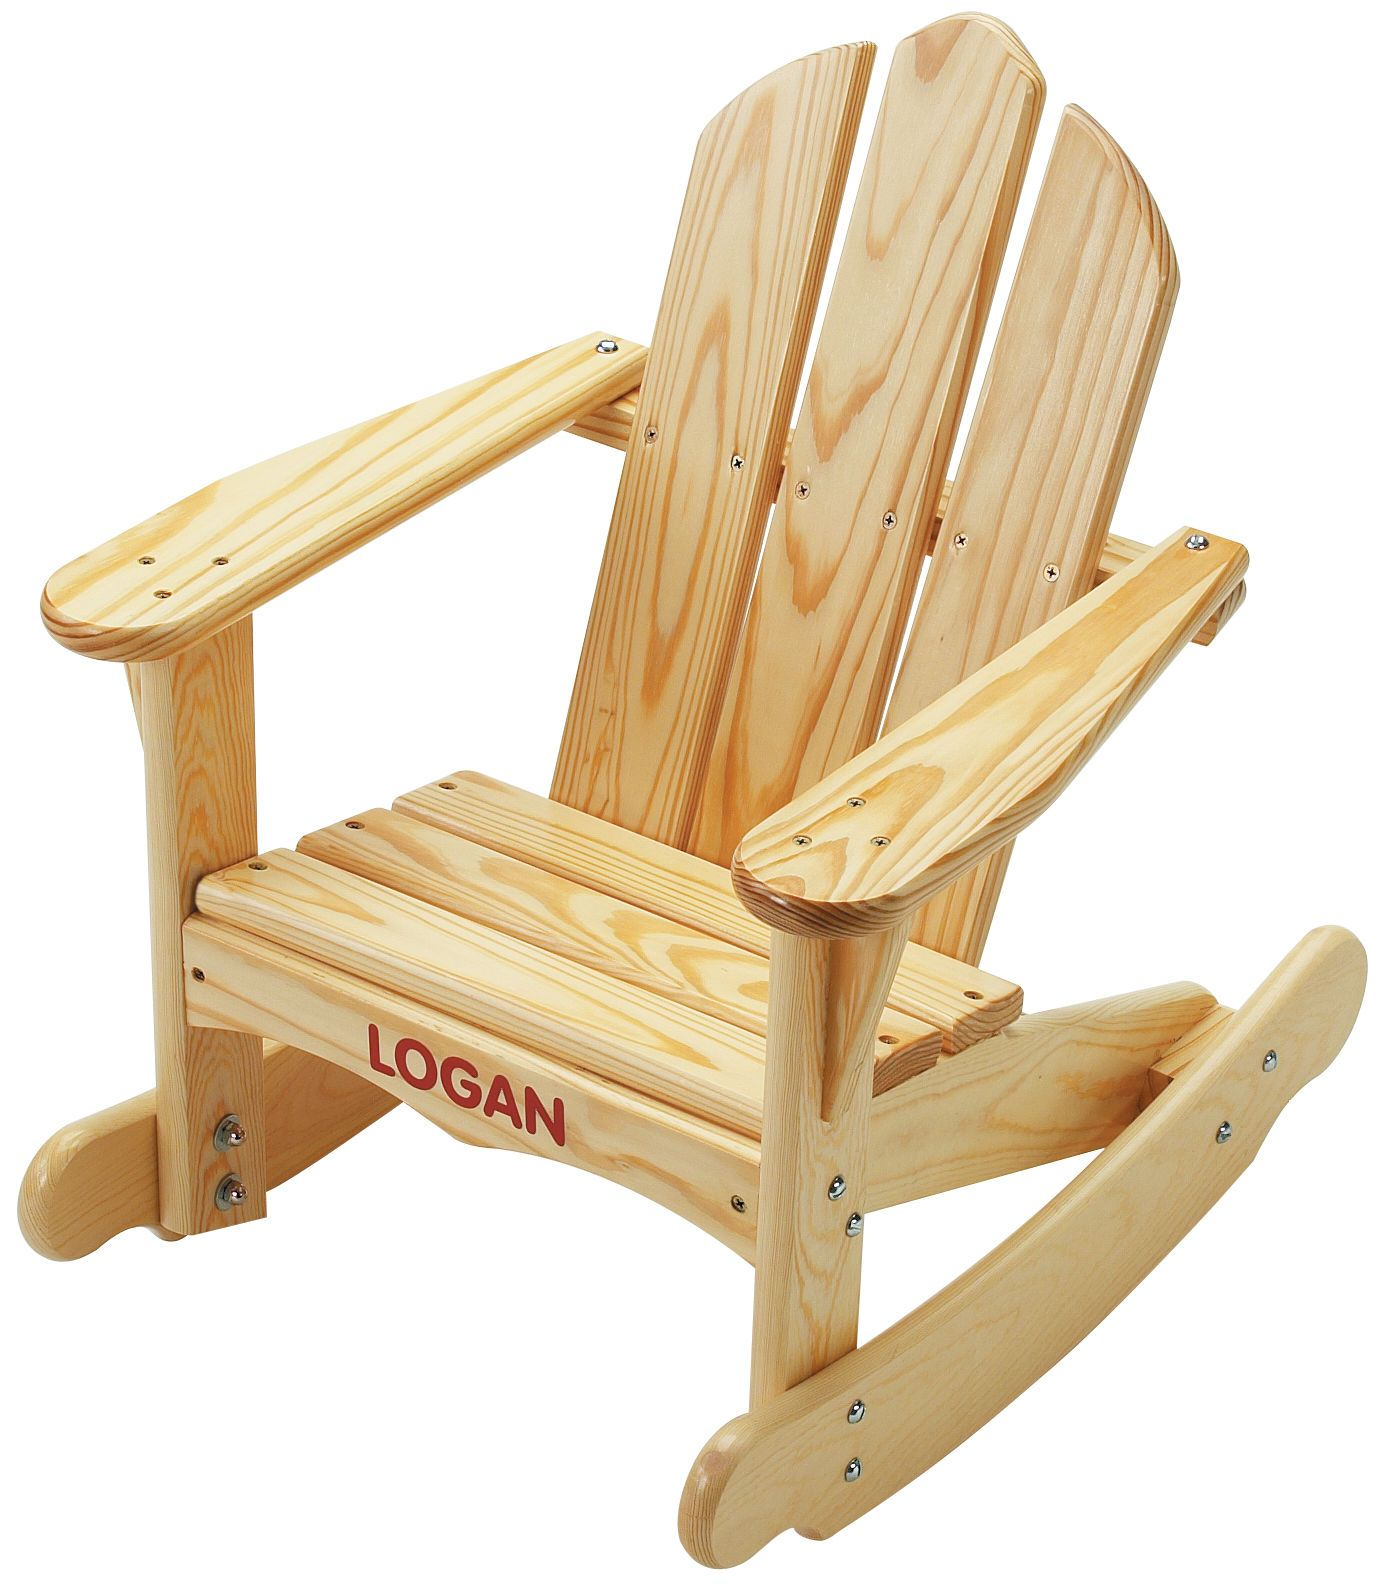 Adirondack chair plans  fr  Benches  Chairs  Seats